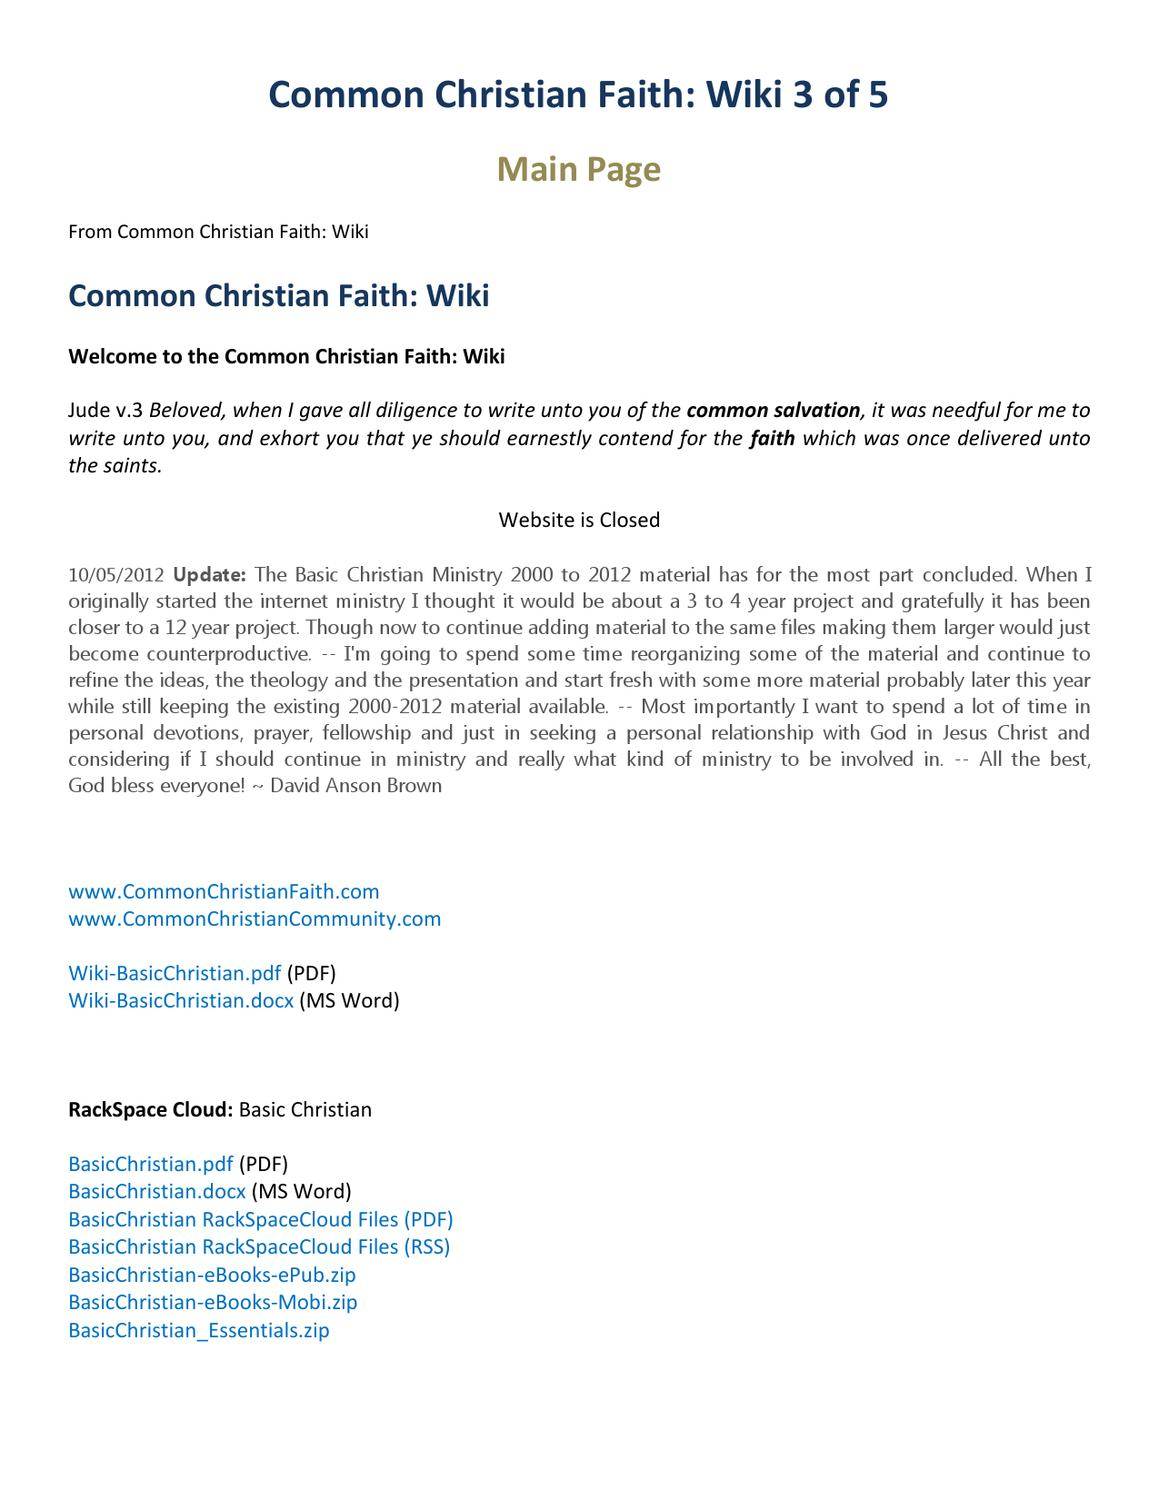 Common christian faith wiki 3 of 5 by david brown issuu malvernweather Choice Image